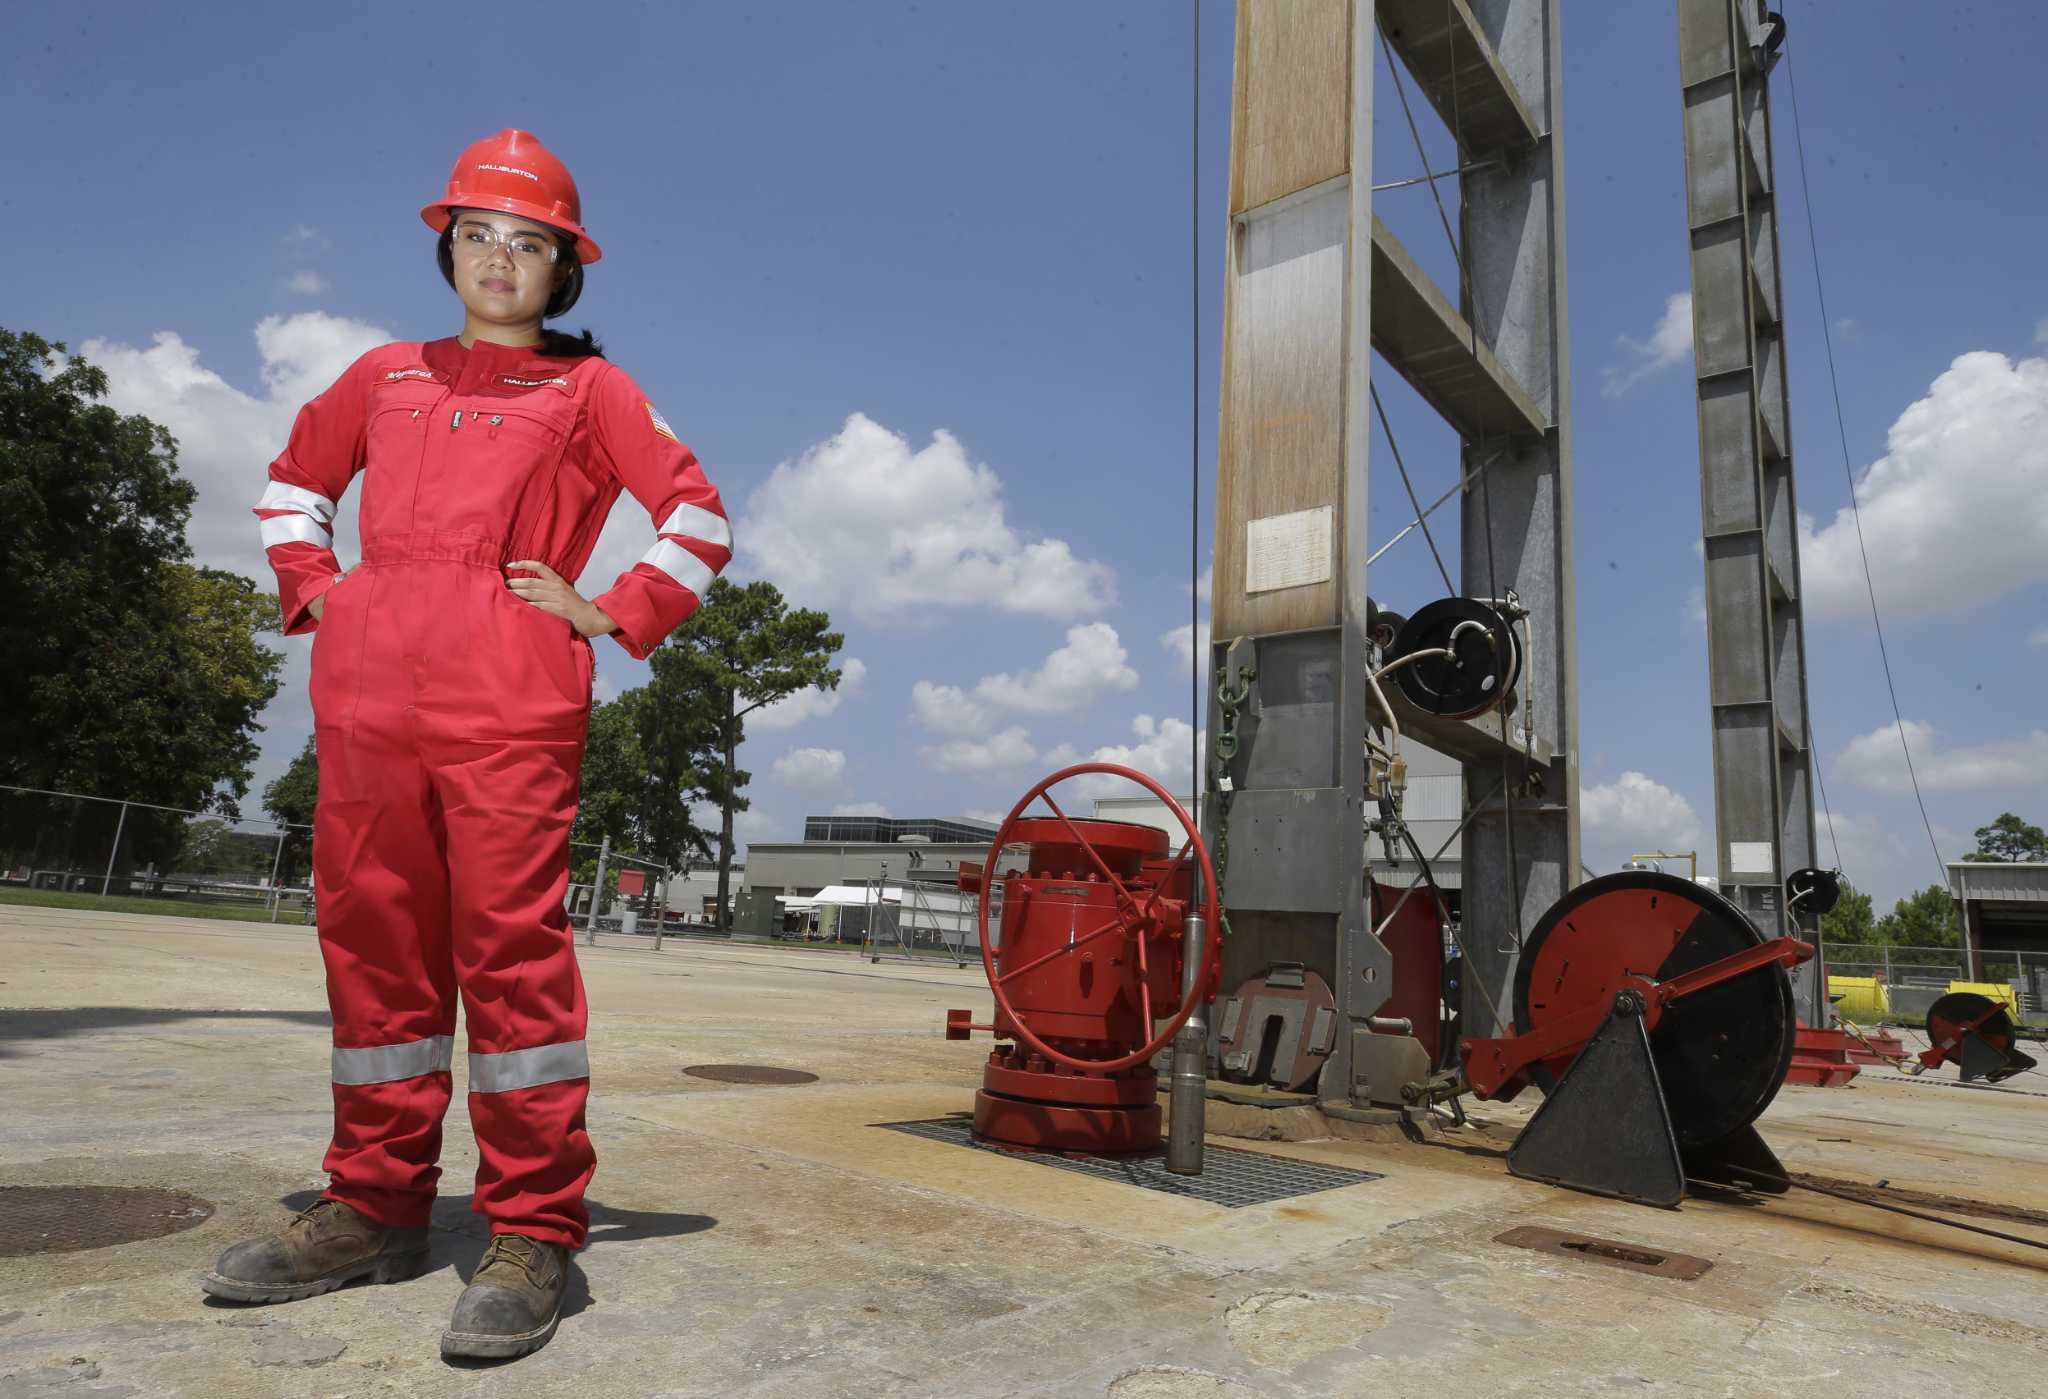 Flipboard Coveralls for all What Halliburton learned from Rosie the Riveter